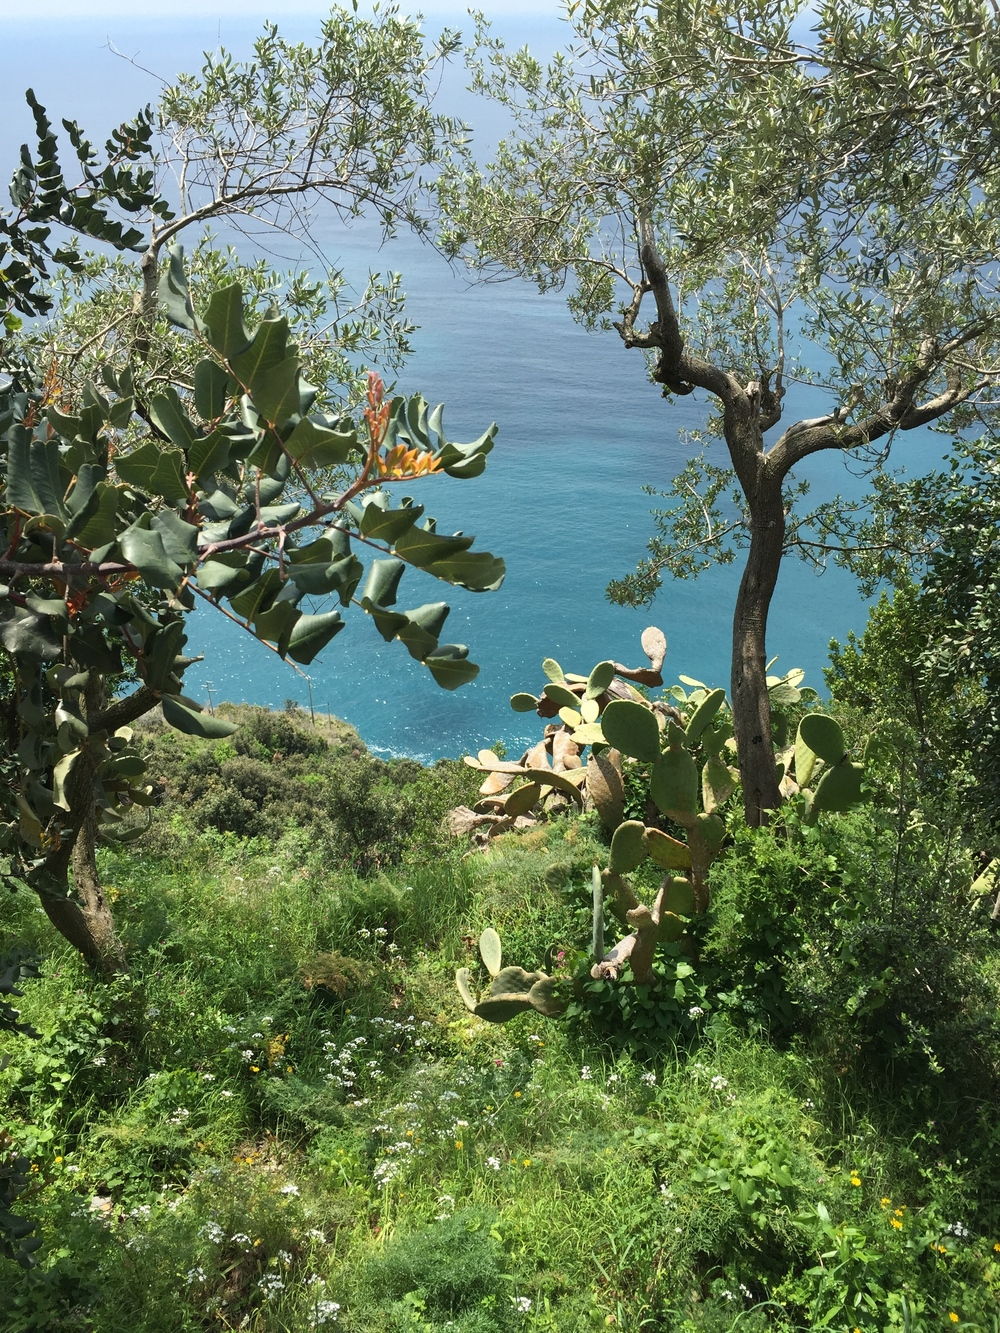 The ocean through the trees EAT.PRAY.MOVE Yoga Retreats | Amalfi Coast, Italy